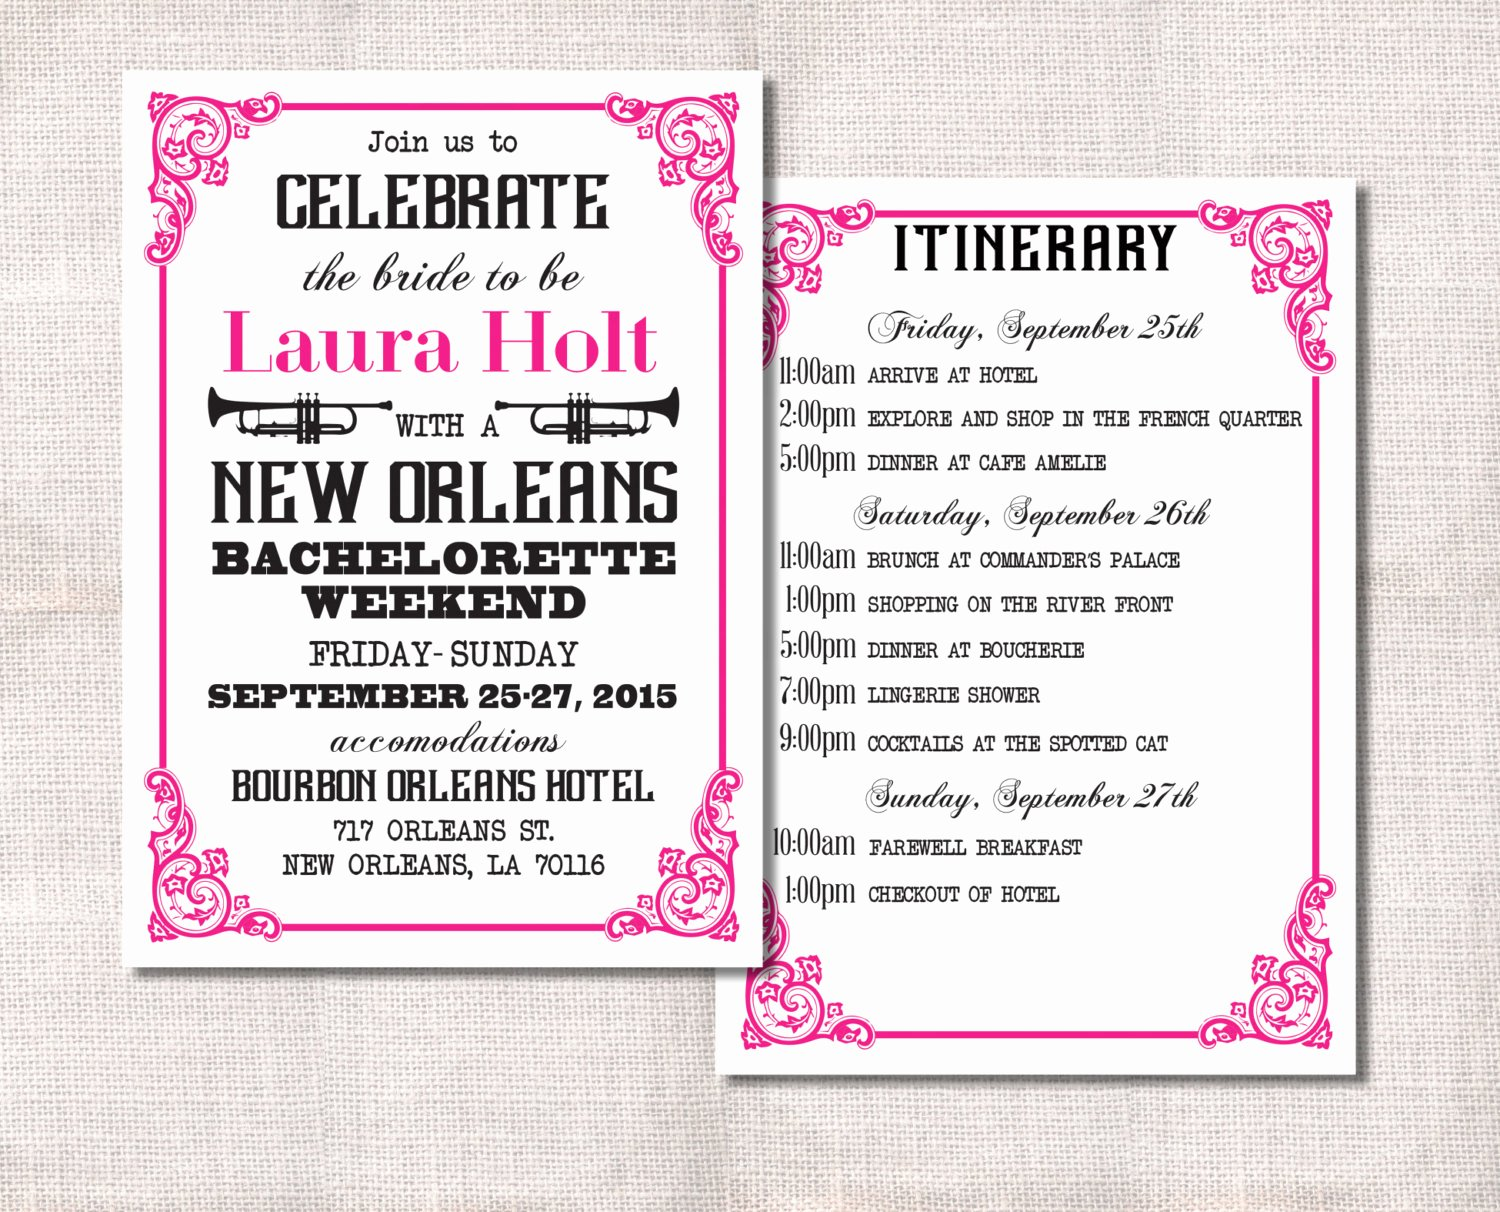 Bachelorette Party Itinerary Template Fresh Bachelorette Party Weekend Invitation and Itinerary Custom